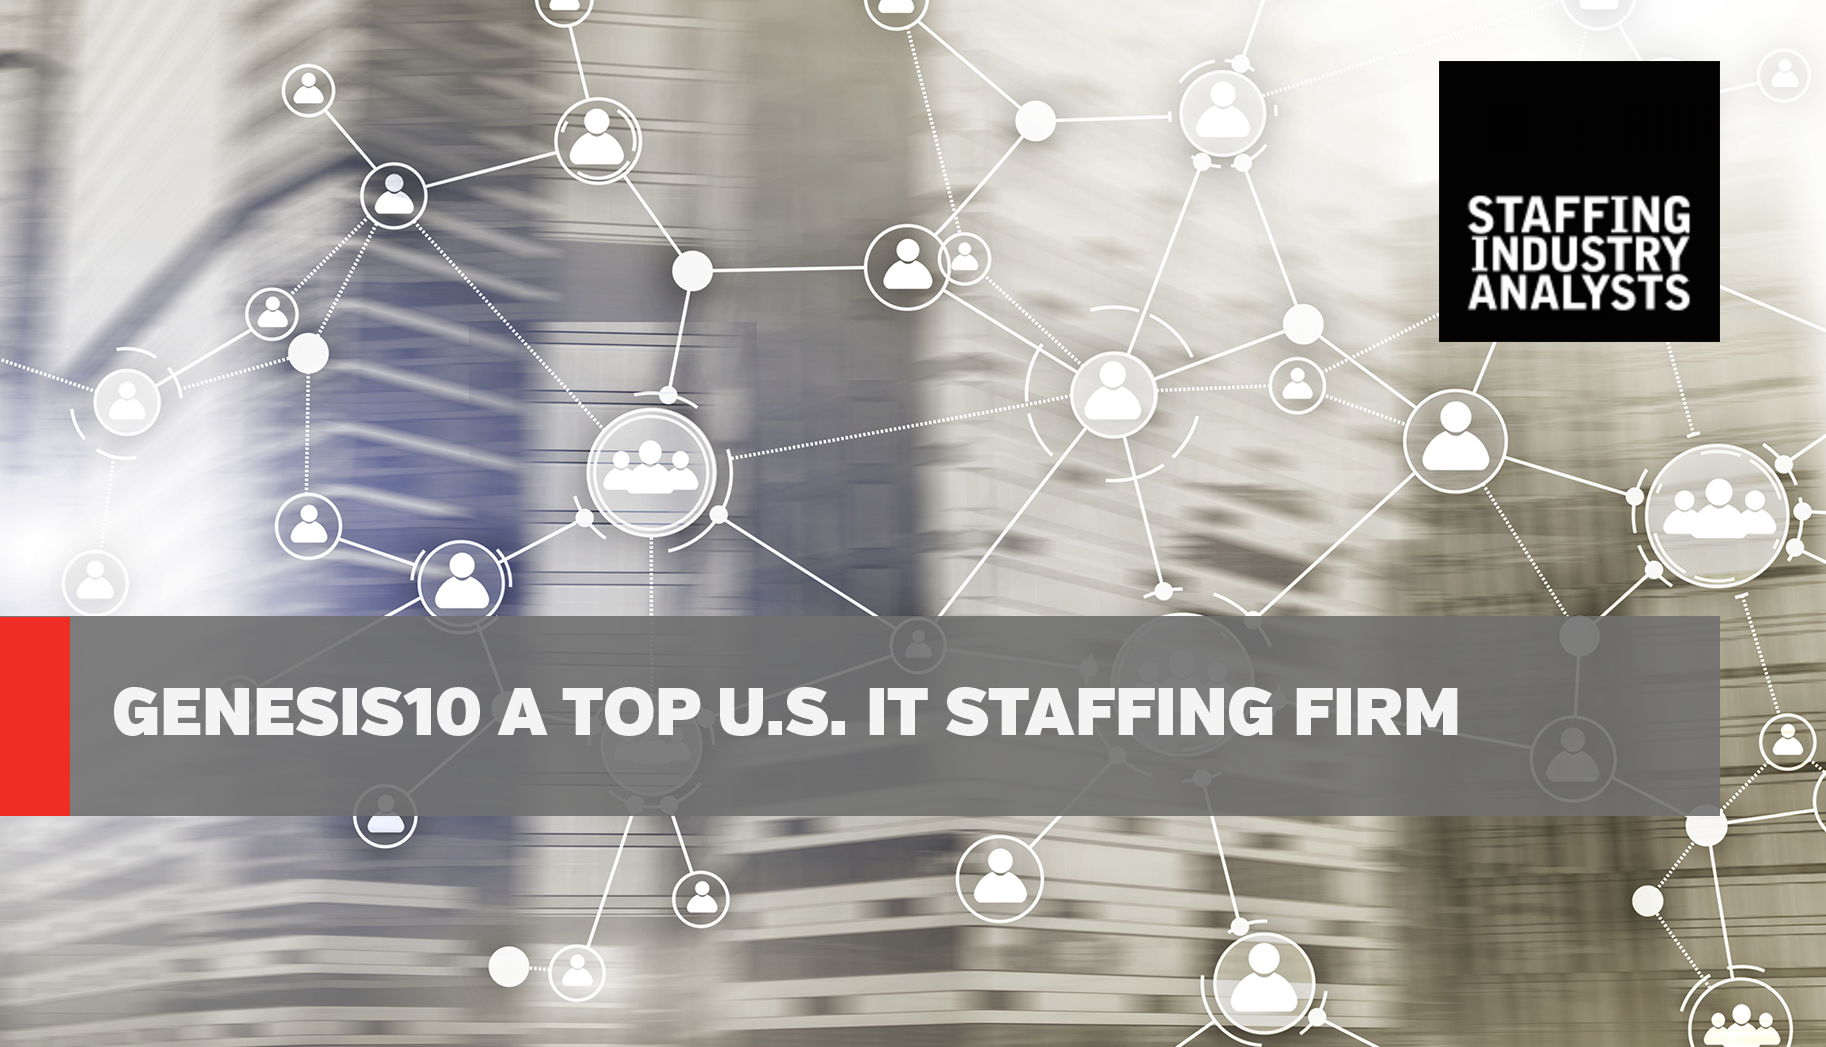 LinkedIn SIA Genesis10 a Top U.S. IT Staffing Firm